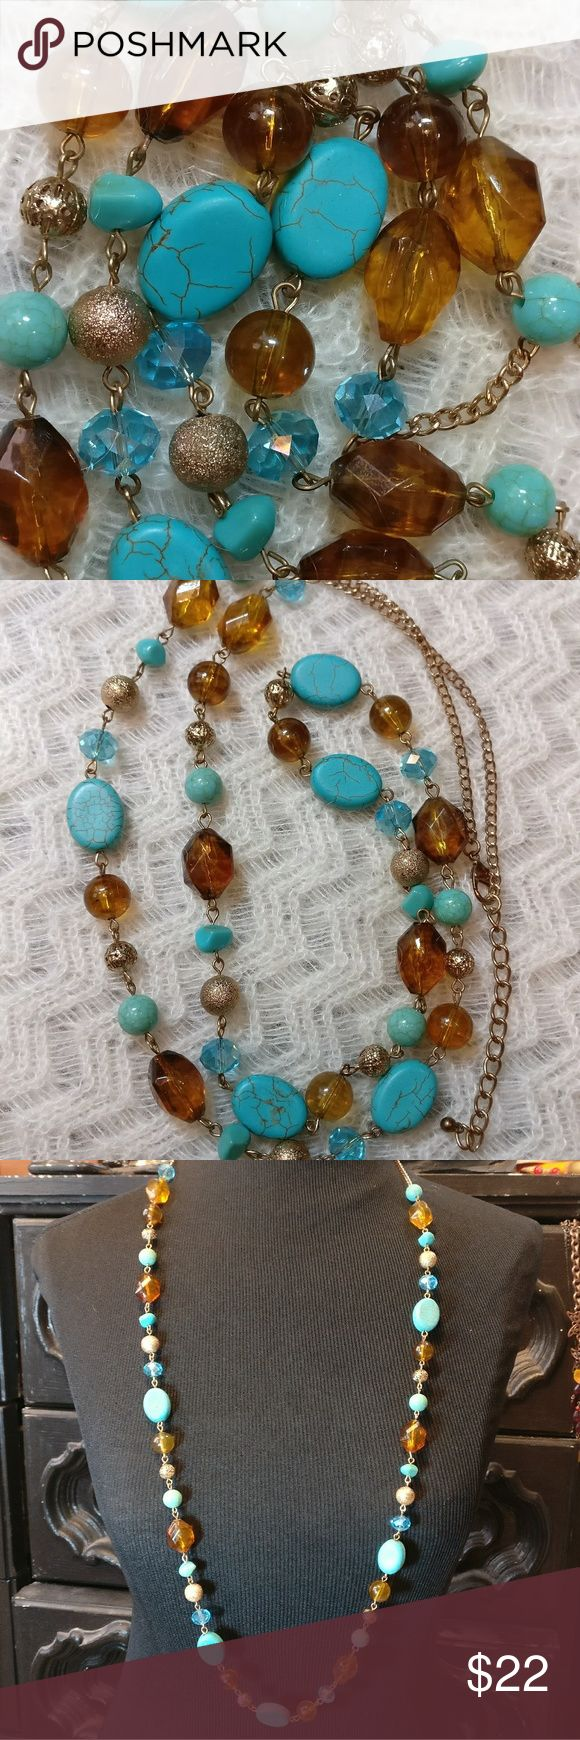 Turquoise Amber Blue Faceted Crystal Long Necklace In good condition. Minimal wear. Amber Lucite. Turquoise colored glass. Faceted Blue Crystals. Gold Filigree Spheres. Adjustable length. Gold tone. Jewelry Necklaces